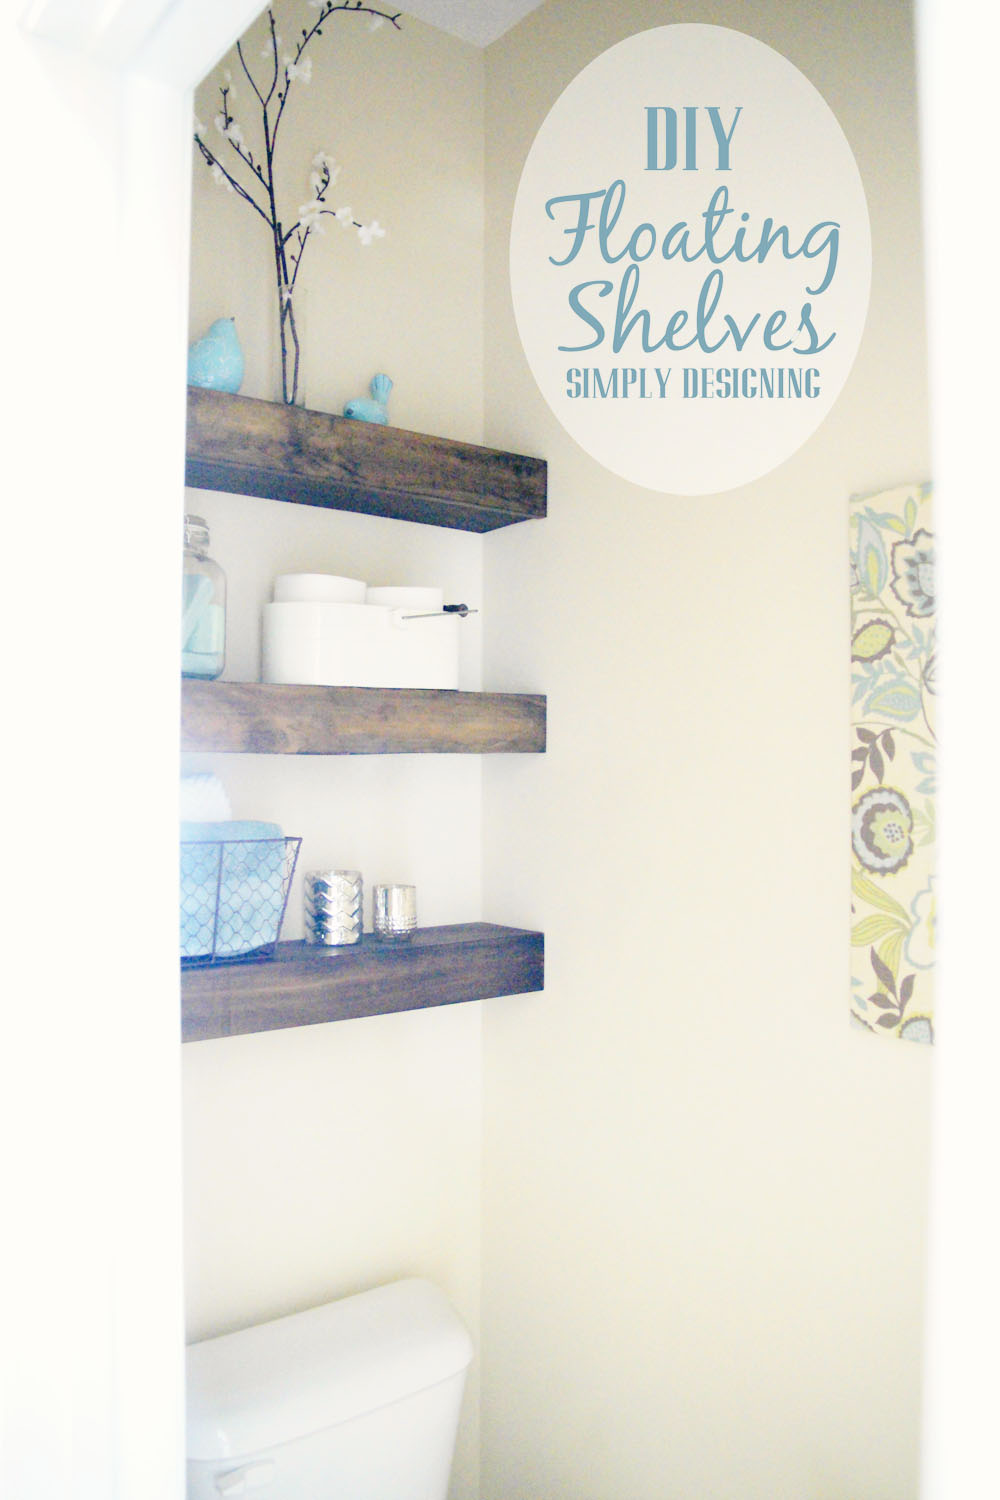 DIY Floating Shelves Are Really Easy To Make! And They Are The Perfect  Shelves To